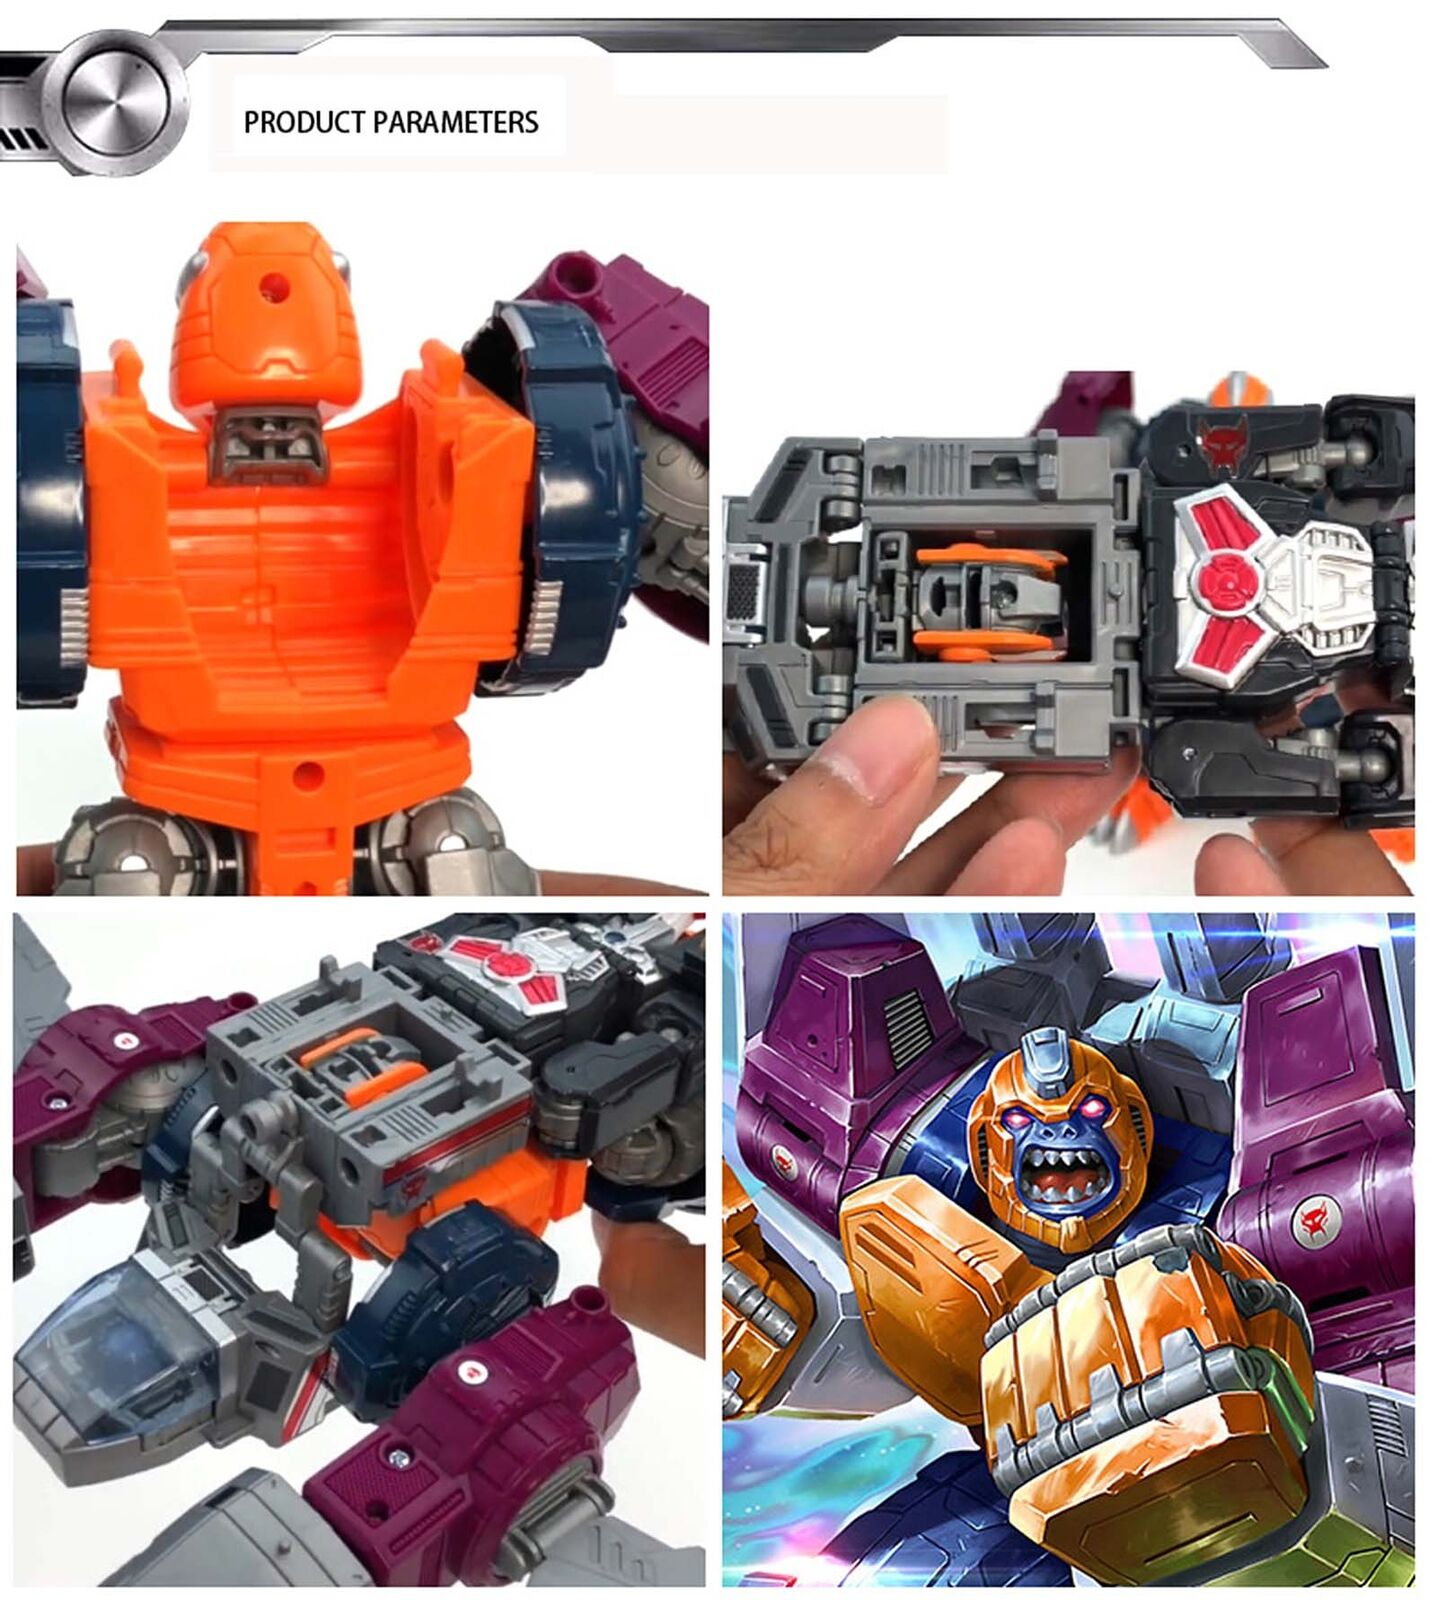 energia of the the the primes potp leader Evolution in modo ottimale Optimus Transformers NUOVO 36ae1e